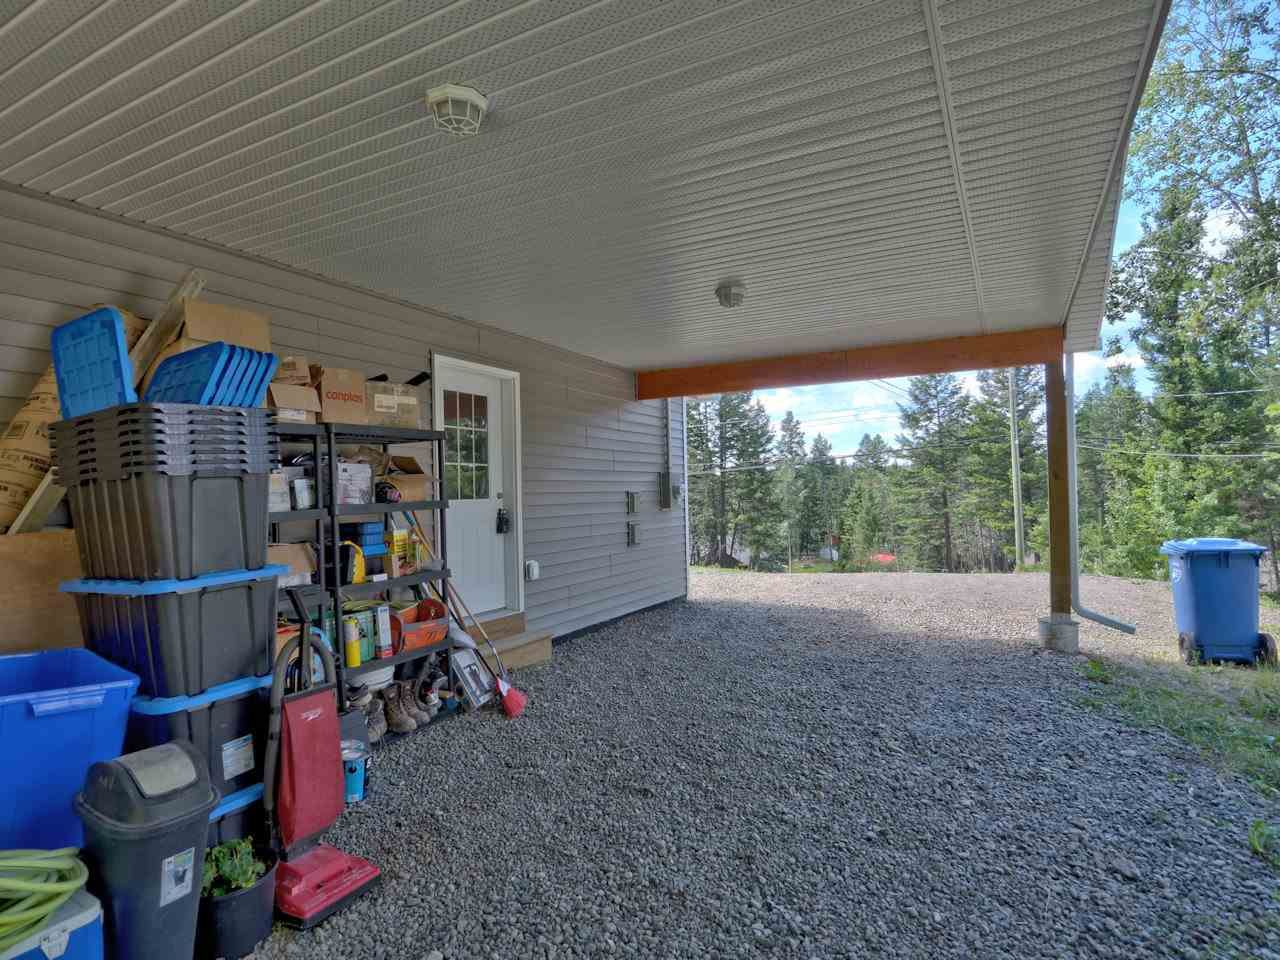 Photo 26: Photos: 4915 KITWANGA Drive in 108 Mile Ranch: 108 Ranch House for sale (100 Mile House (Zone 10))  : MLS®# R2481177